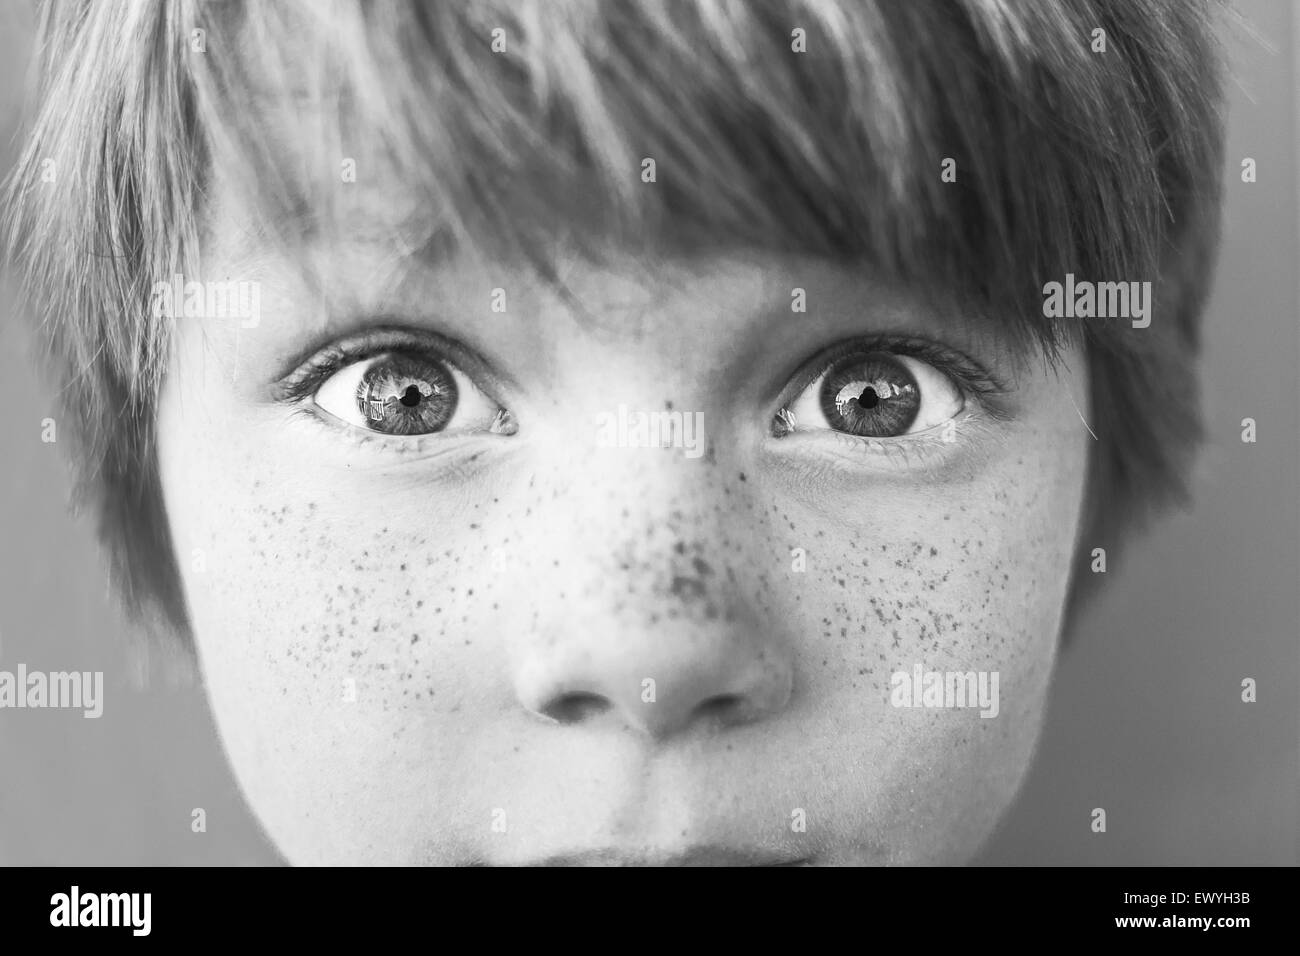 Close-up portrait of a boy with freckles - Stock Image